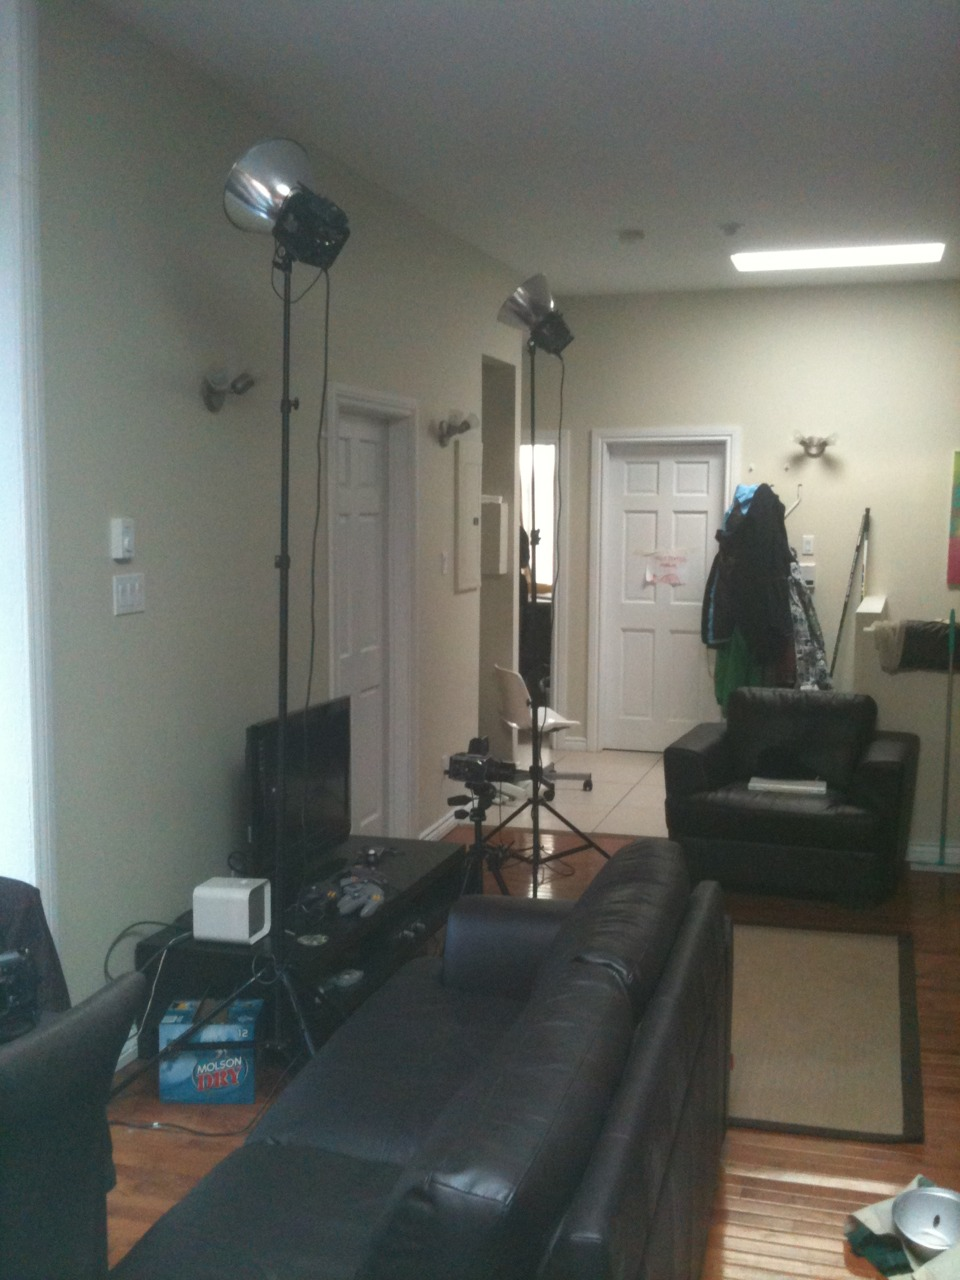 MTL apartment photo session. Photos to come once I get to school and develop the film.